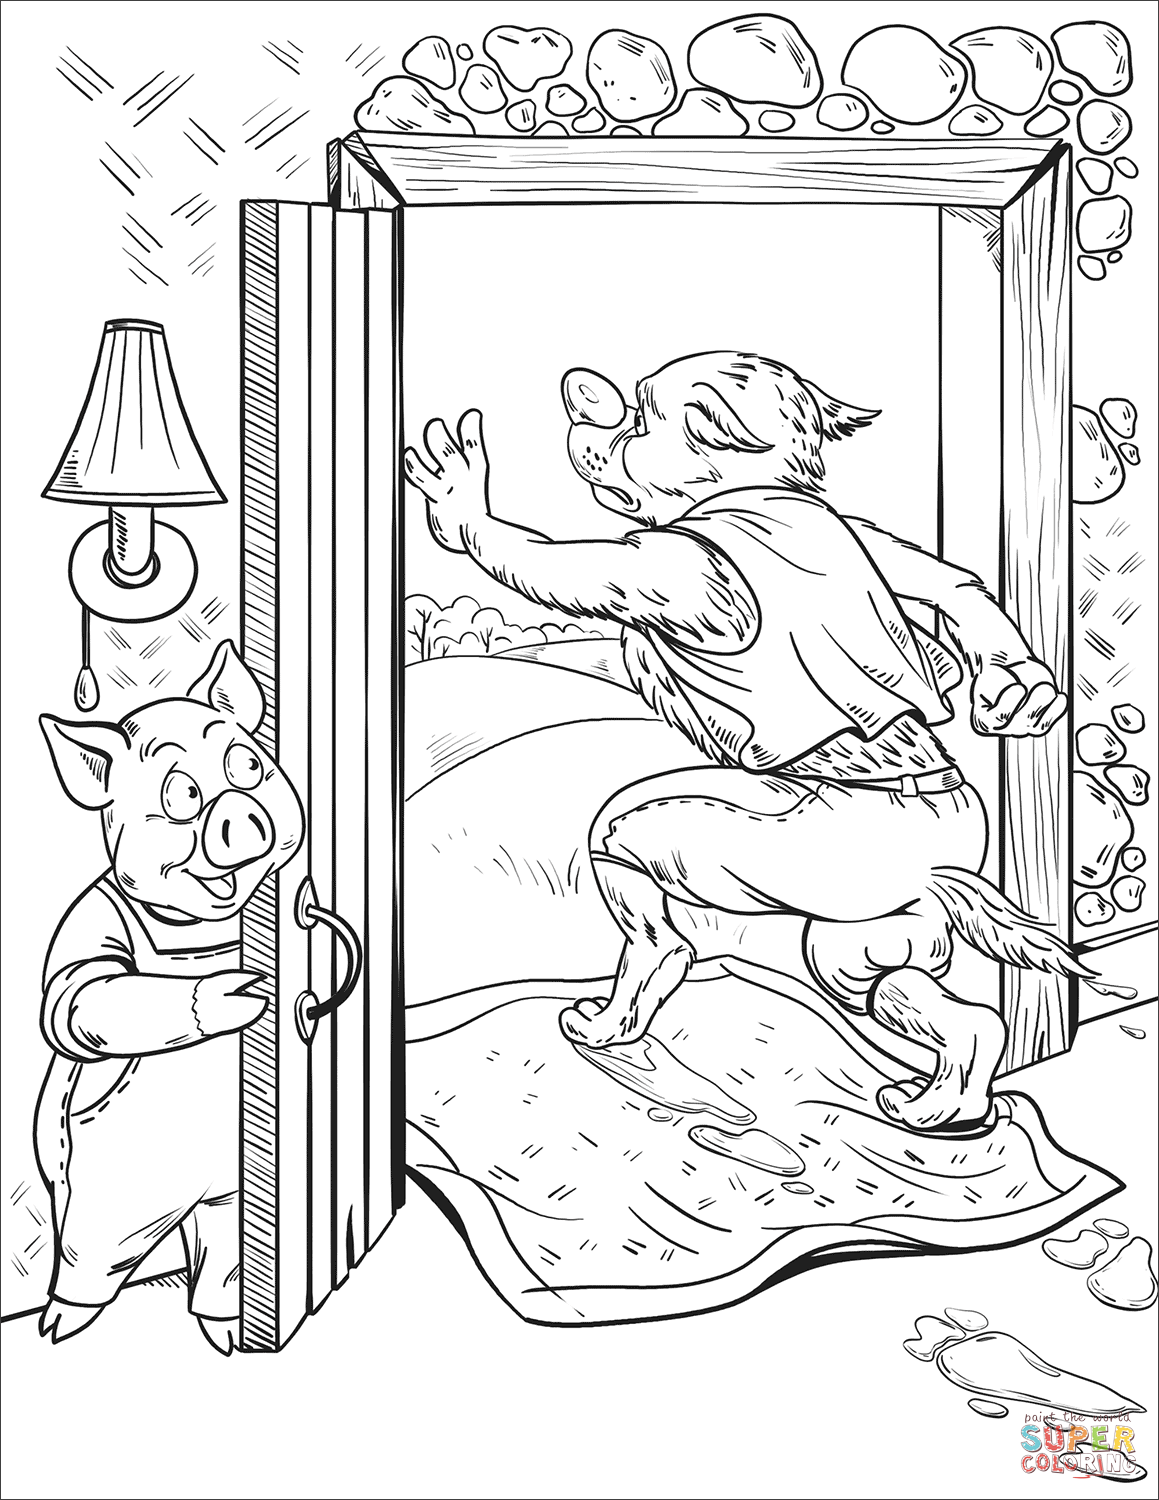 The Wolf Run Away From The Brick House Coloring Page